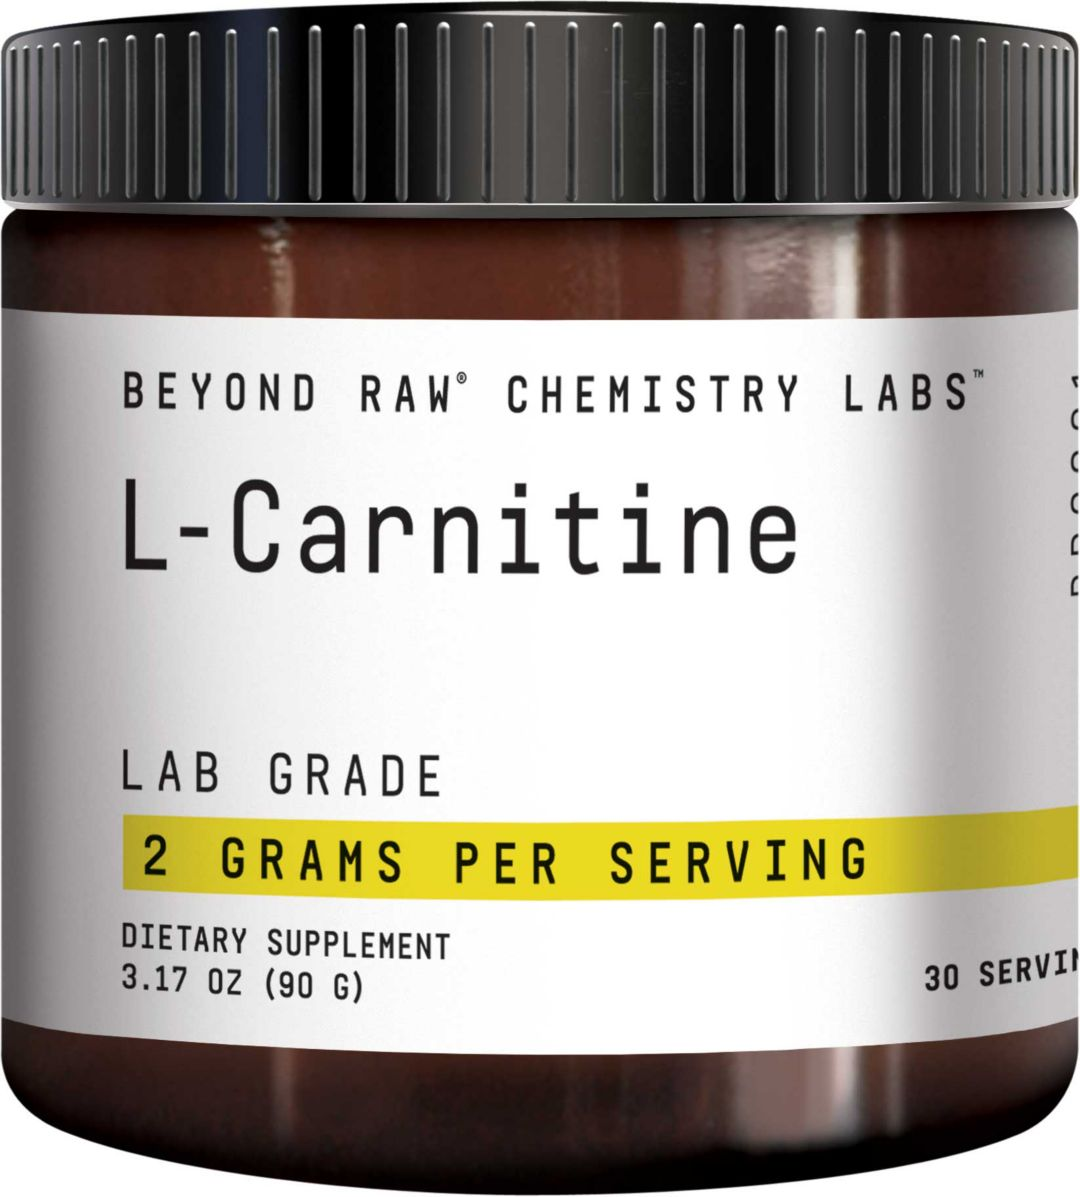 Beyond Raw® Chemistry Labs™ L-Carnitine 30 Servings